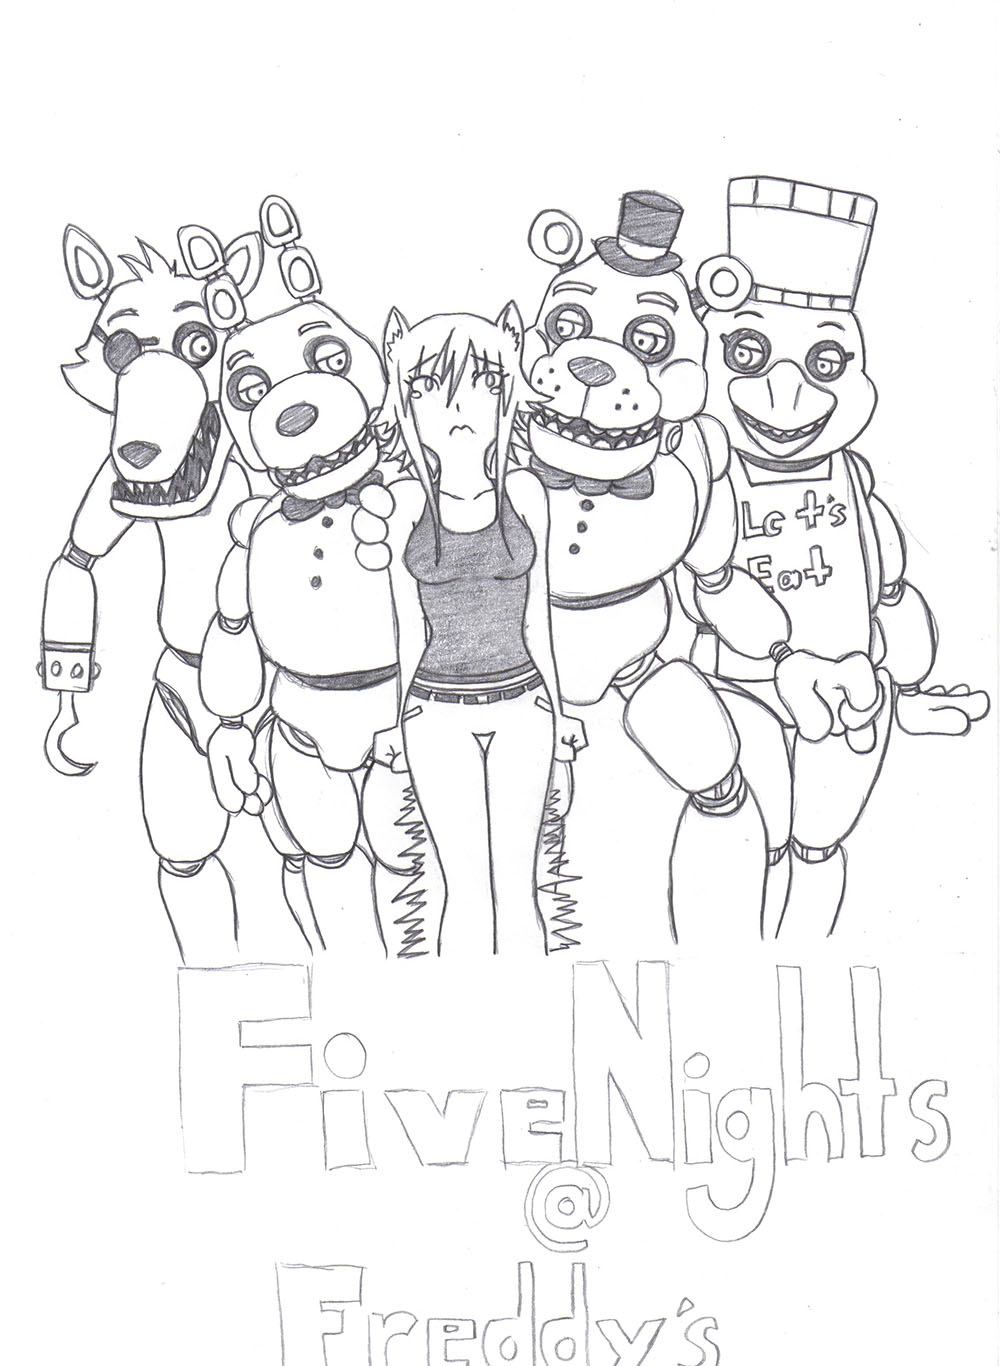 Coloring pictures five nights at freddys 2 cartoon coloring pages - 5 Nights At Freddys All Characters Coloring Pages Sketch Templates